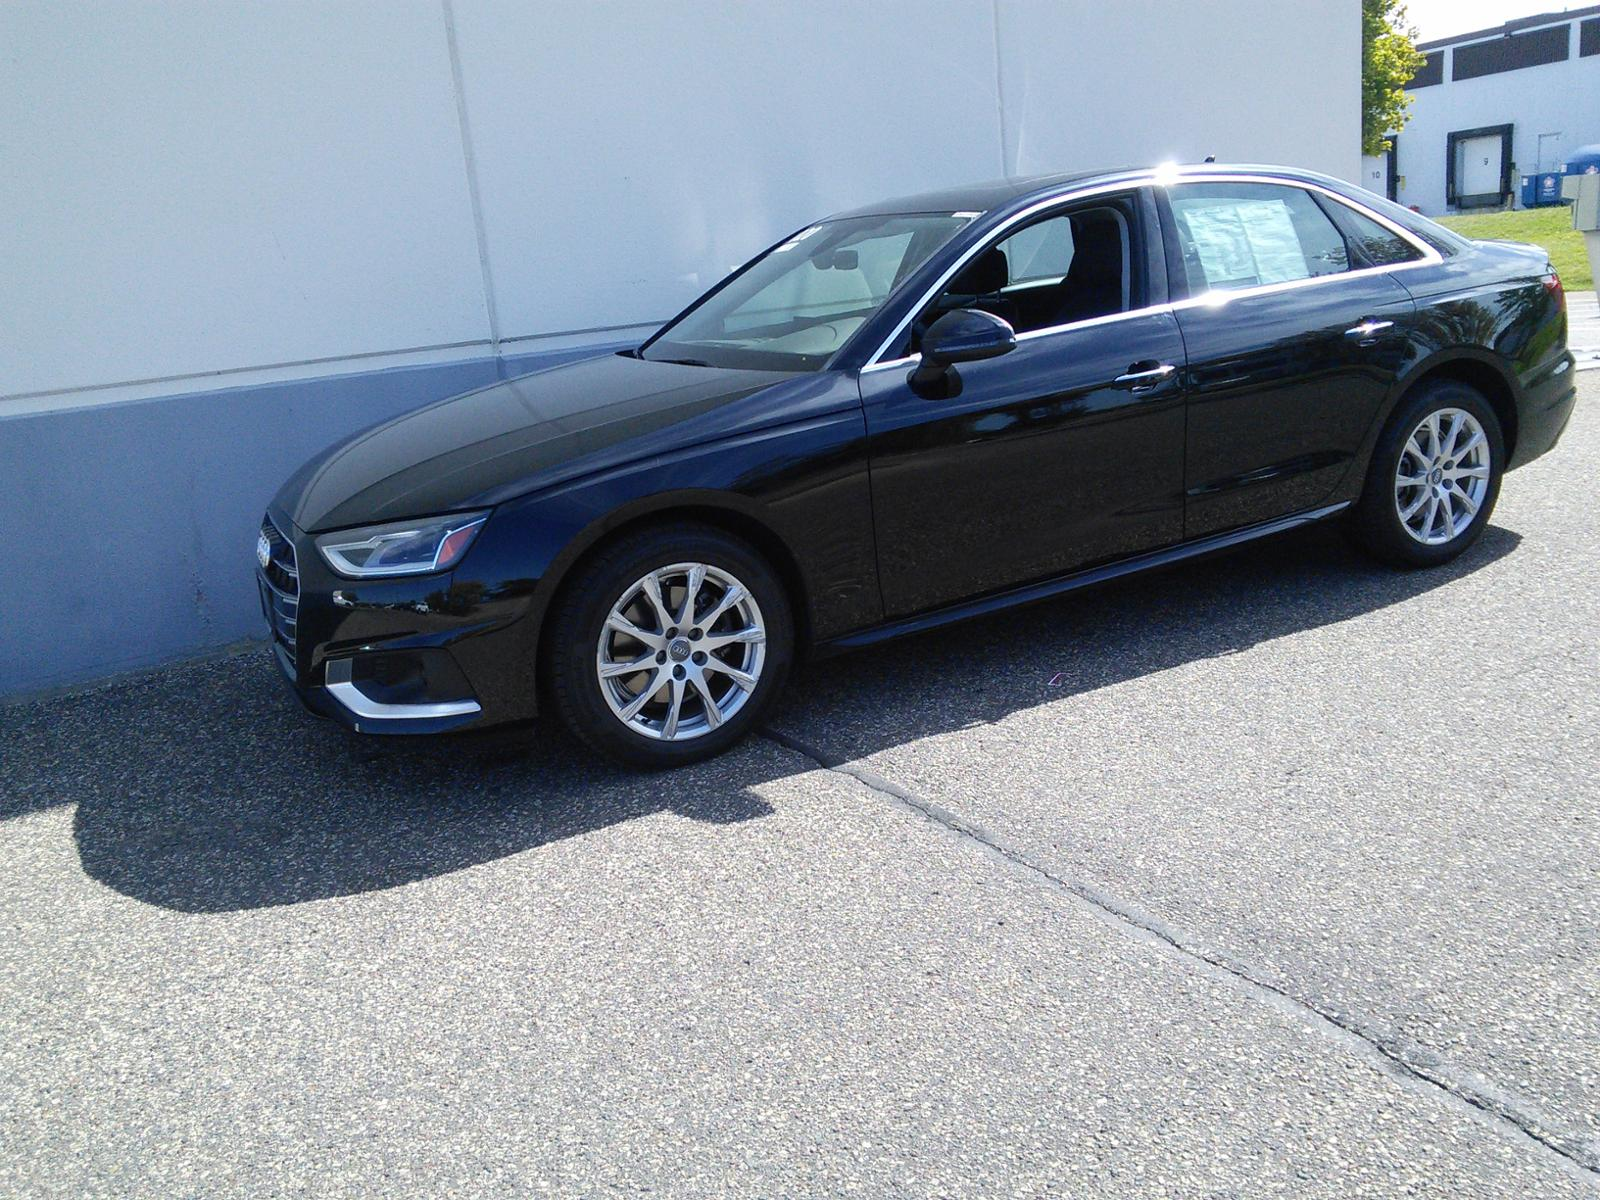 Used 2020 Audi A4 Premium with VIN WAUGMAF49LA049731 for sale in Maplewood, Minnesota